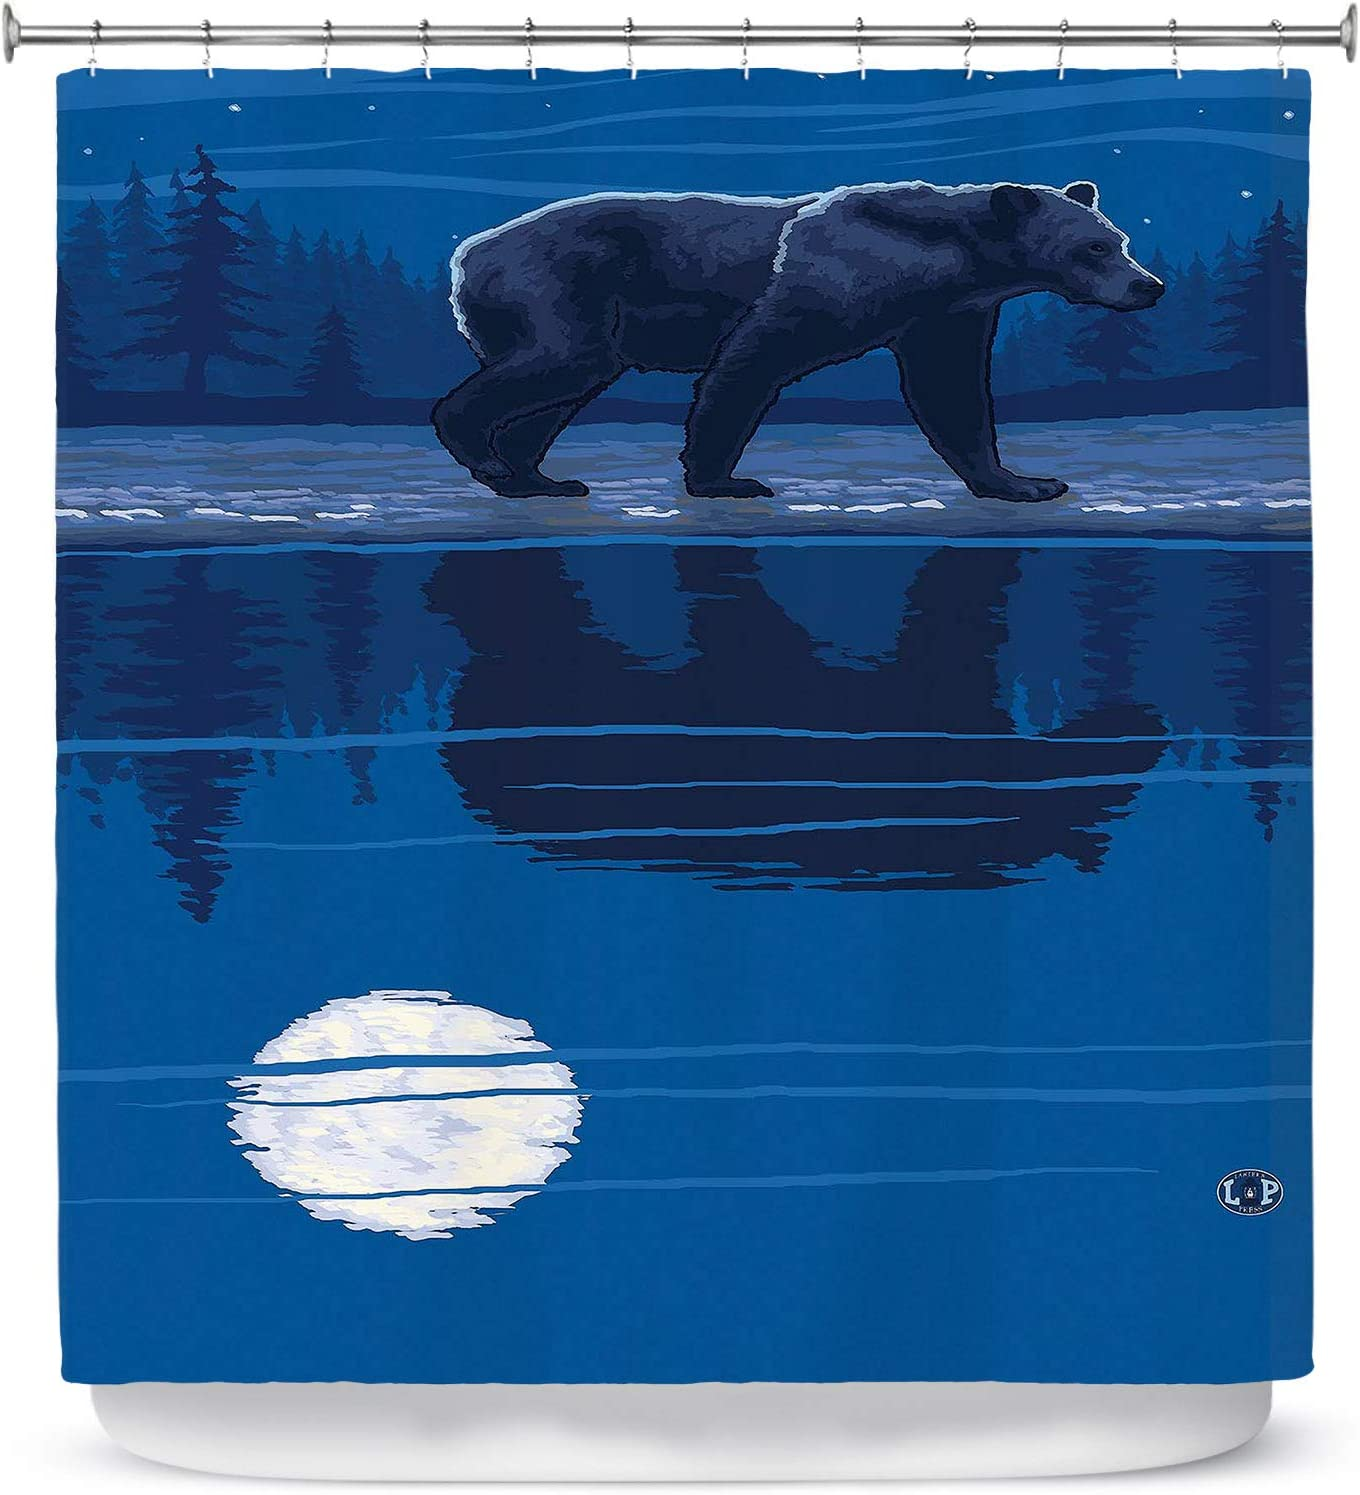 Dia Noche Designs Bathroom List price Shower Curtains Max 86% OFF LP Bea by Moonlight -